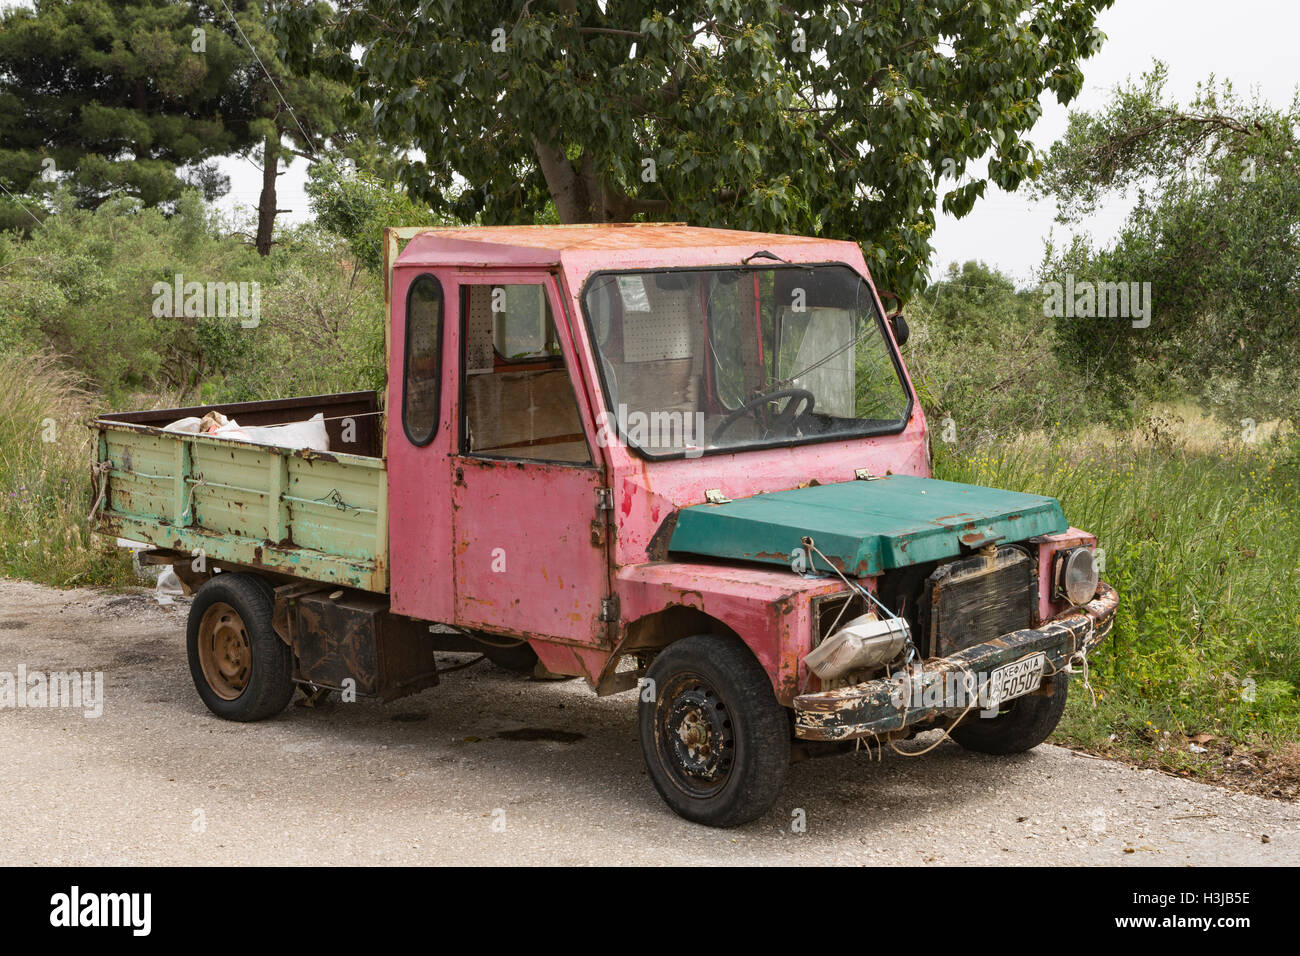 An old Greek Van has seen better days, Kefalonia, Greece. - Stock Image